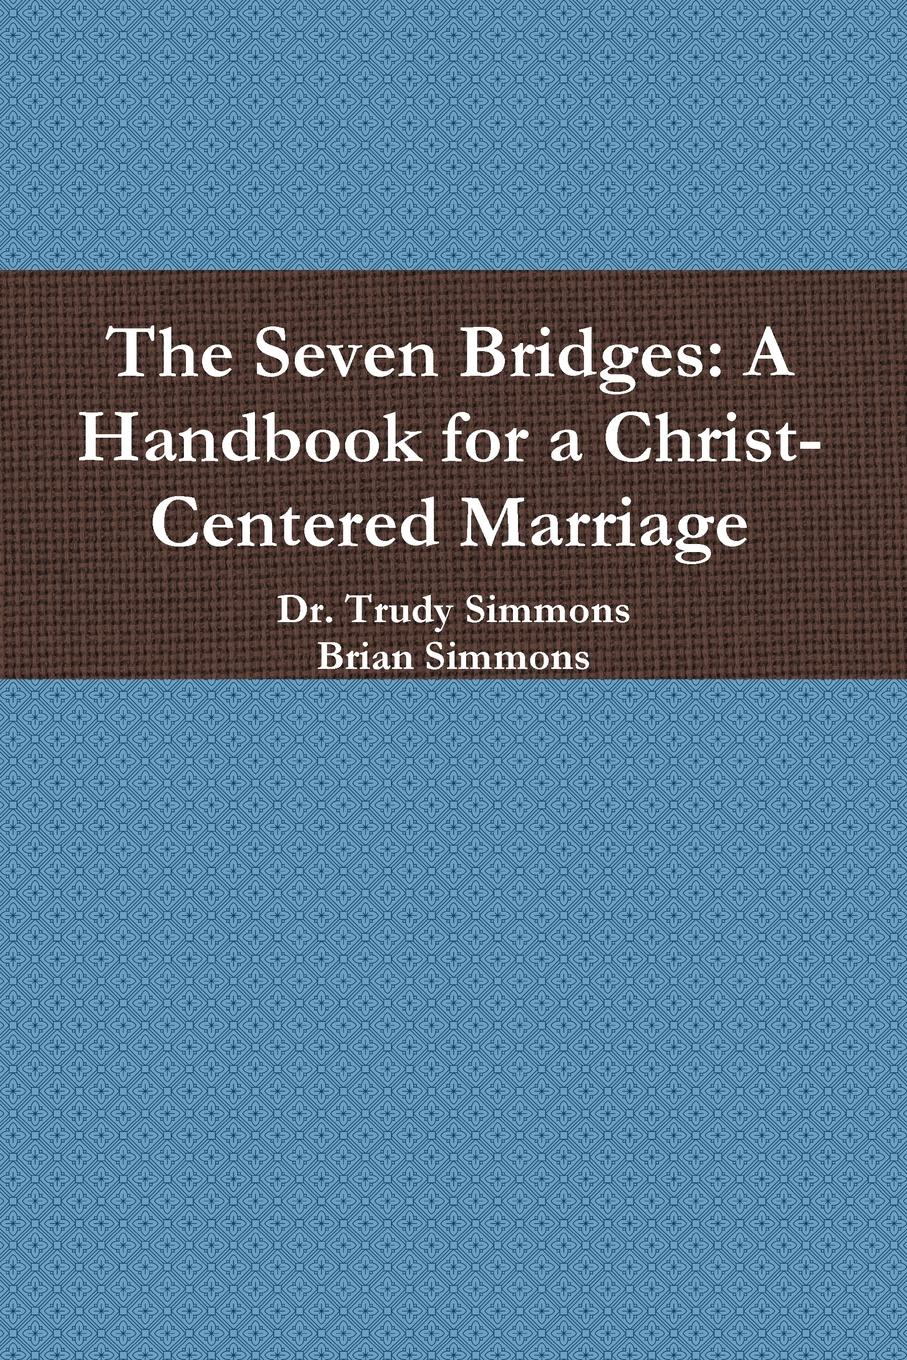 Dr. Trudy Simmons, Brian Simmons The Seven Bridges. A Handbook for a Christ-Centered Marriage